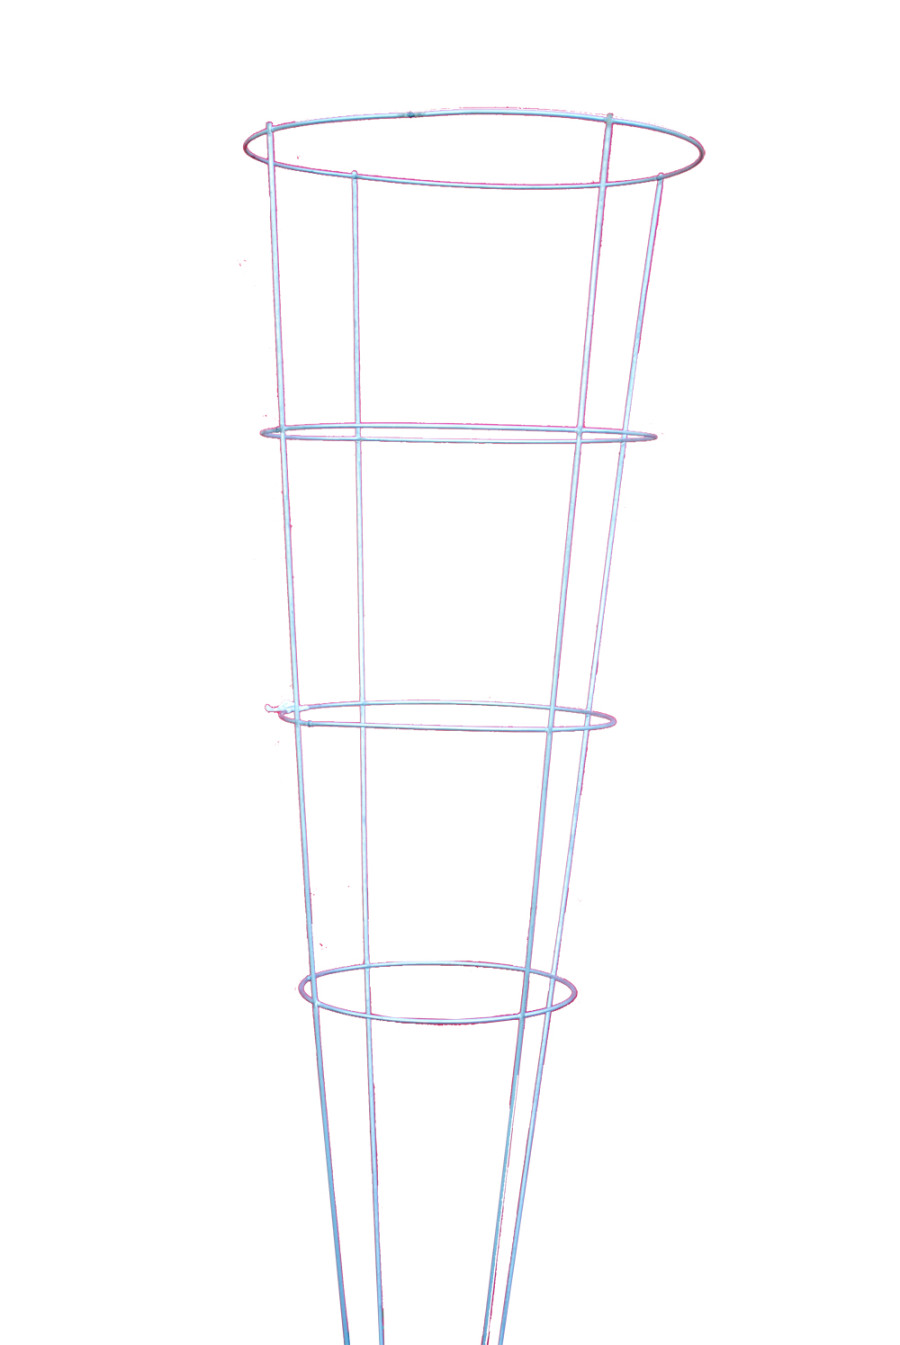 Midwest Wire Works Tomato Cage 4-Leg 4-Ring Heavy-Duty